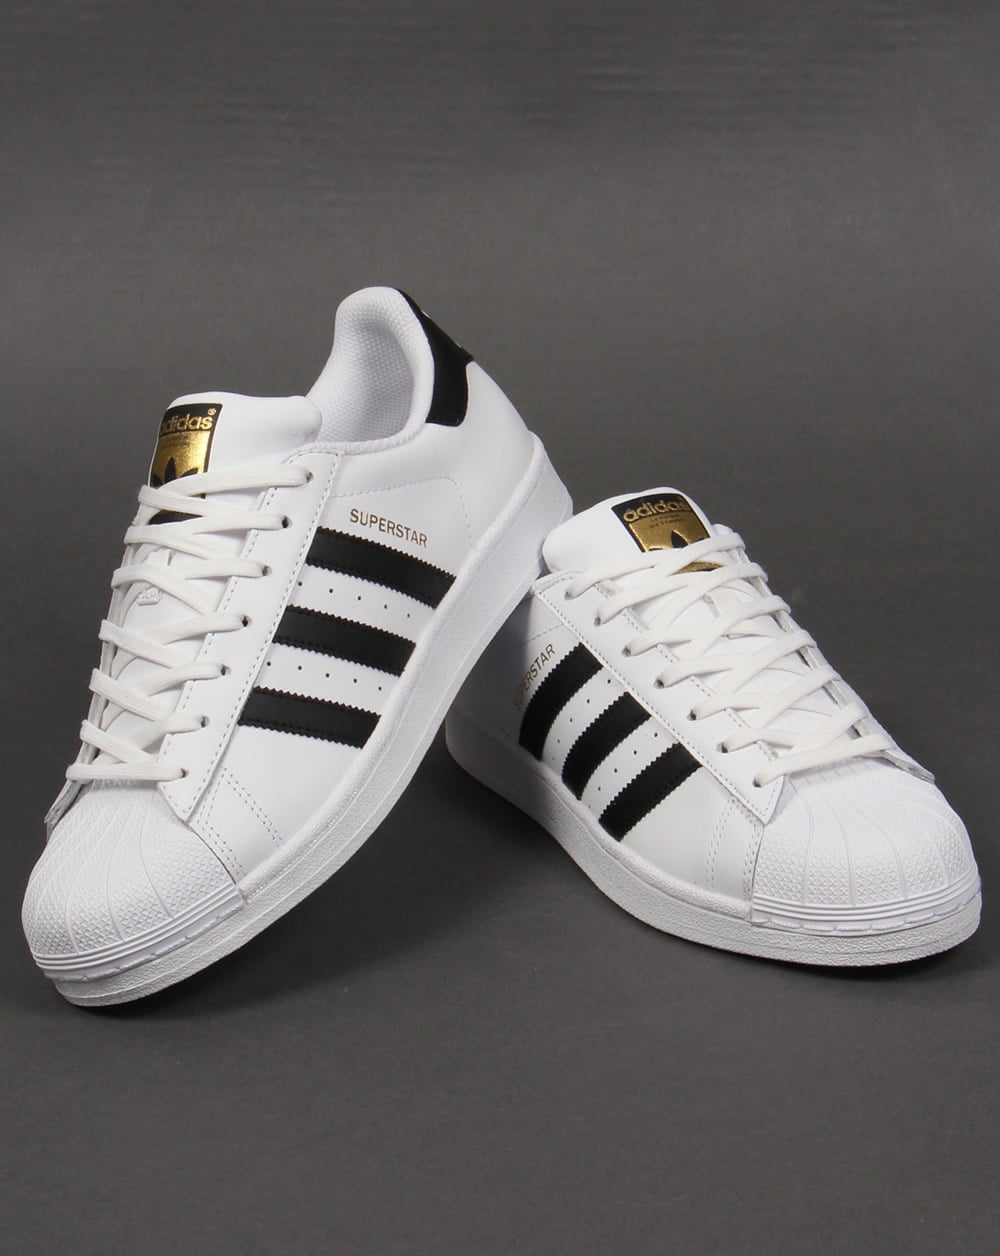 http://www.80scasualclassics.co.uk/images/adidas-superstar-trainers-white-black-p4785-43692_image.jpg